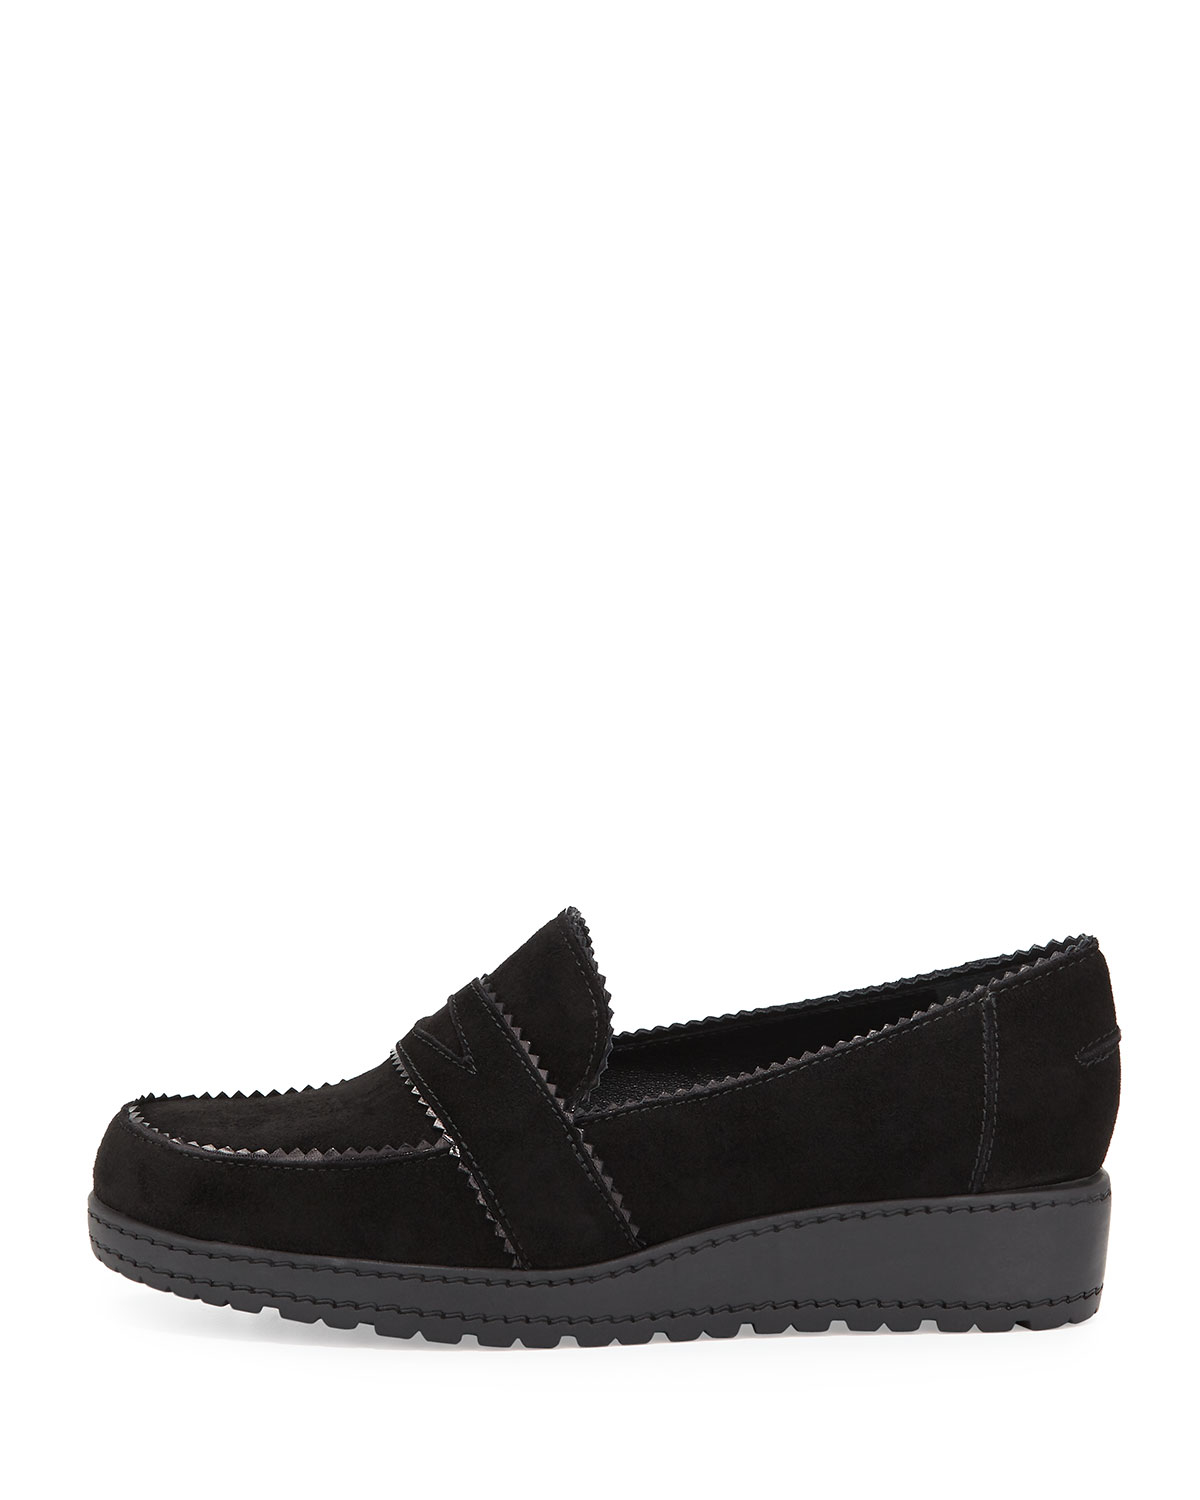 Lyst Stuart Weitzman Schooldays Suede Penny Loafers In Black